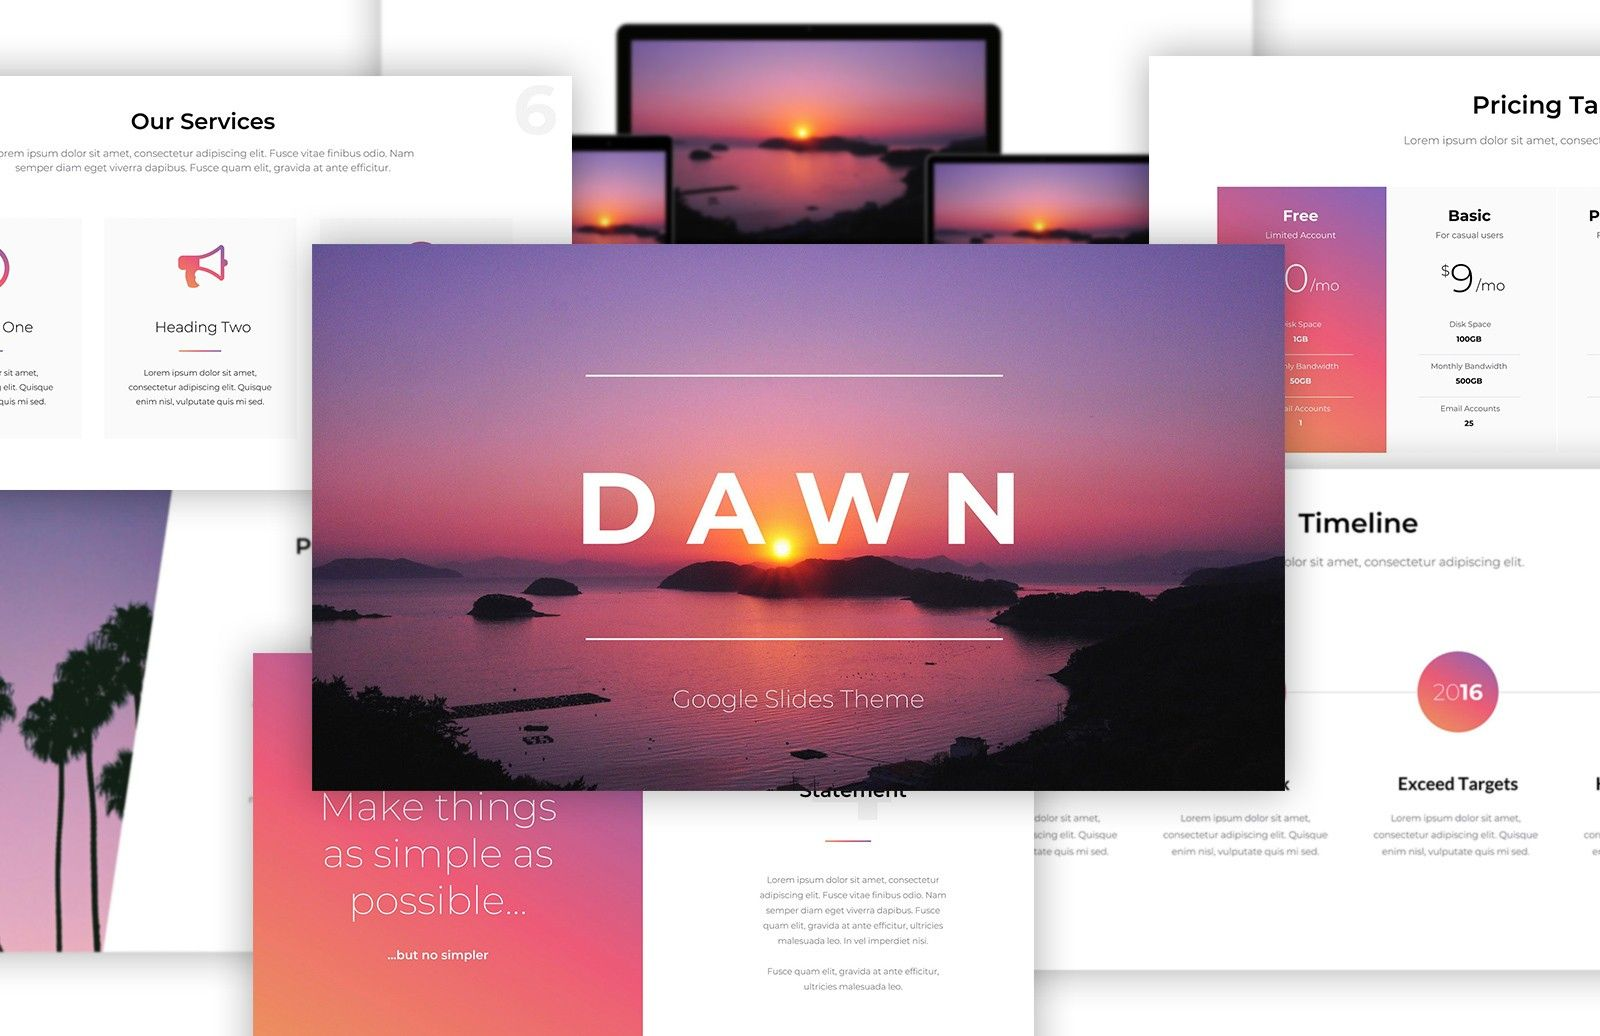 DAWN Free Google Slides Theme Slide design